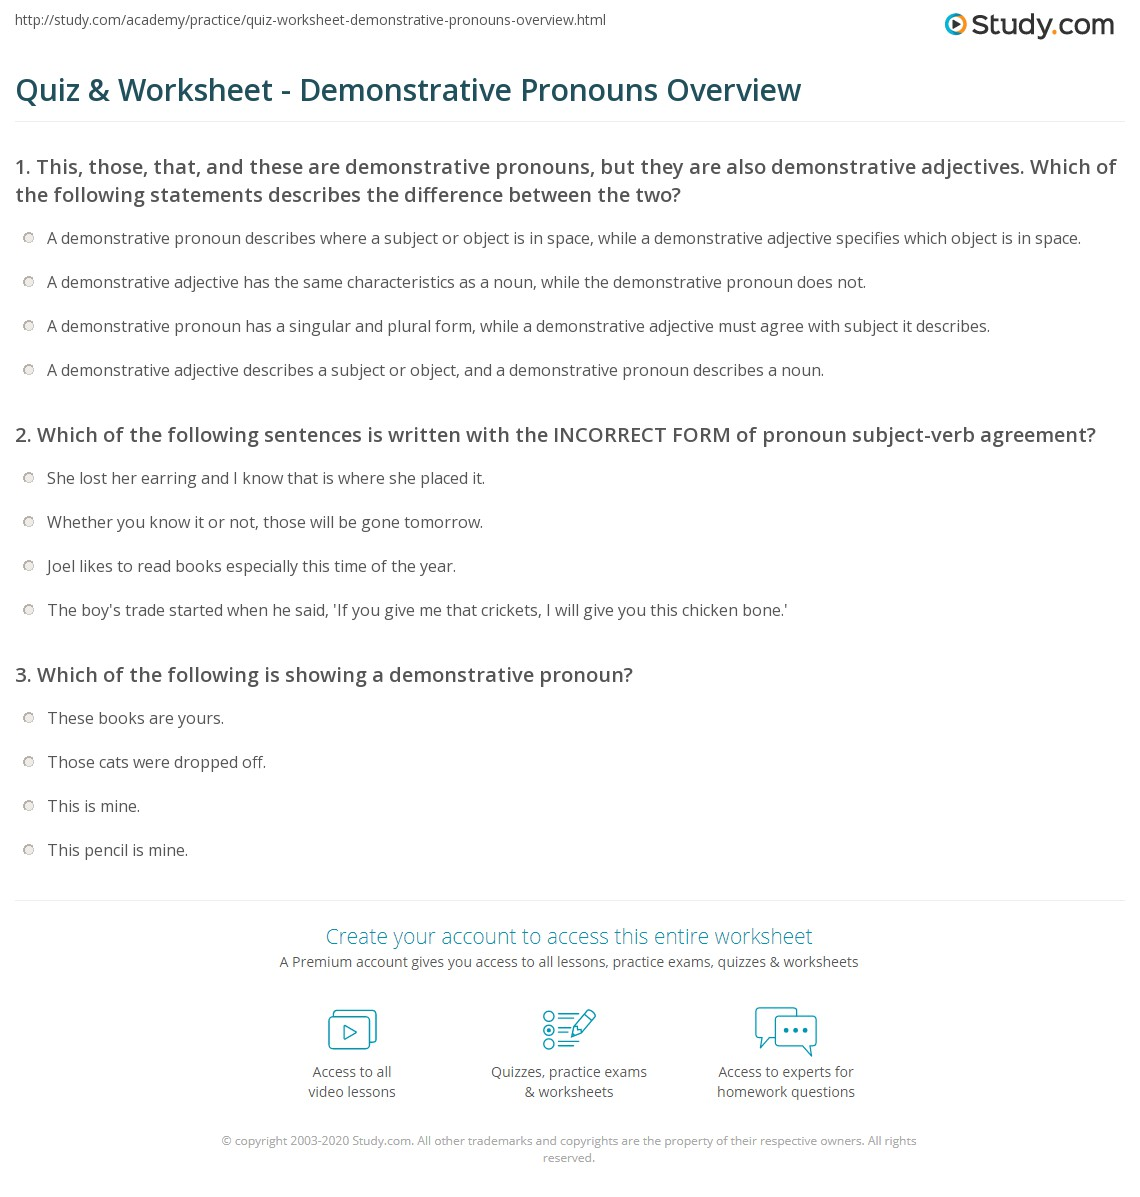 Quiz & Worksheet - Demonstrative Pronouns Overview  Study.com education, multiplication, alphabet worksheets, and grade worksheets Noun And Pronoun Worksheets For Middle School 1472 x 1140